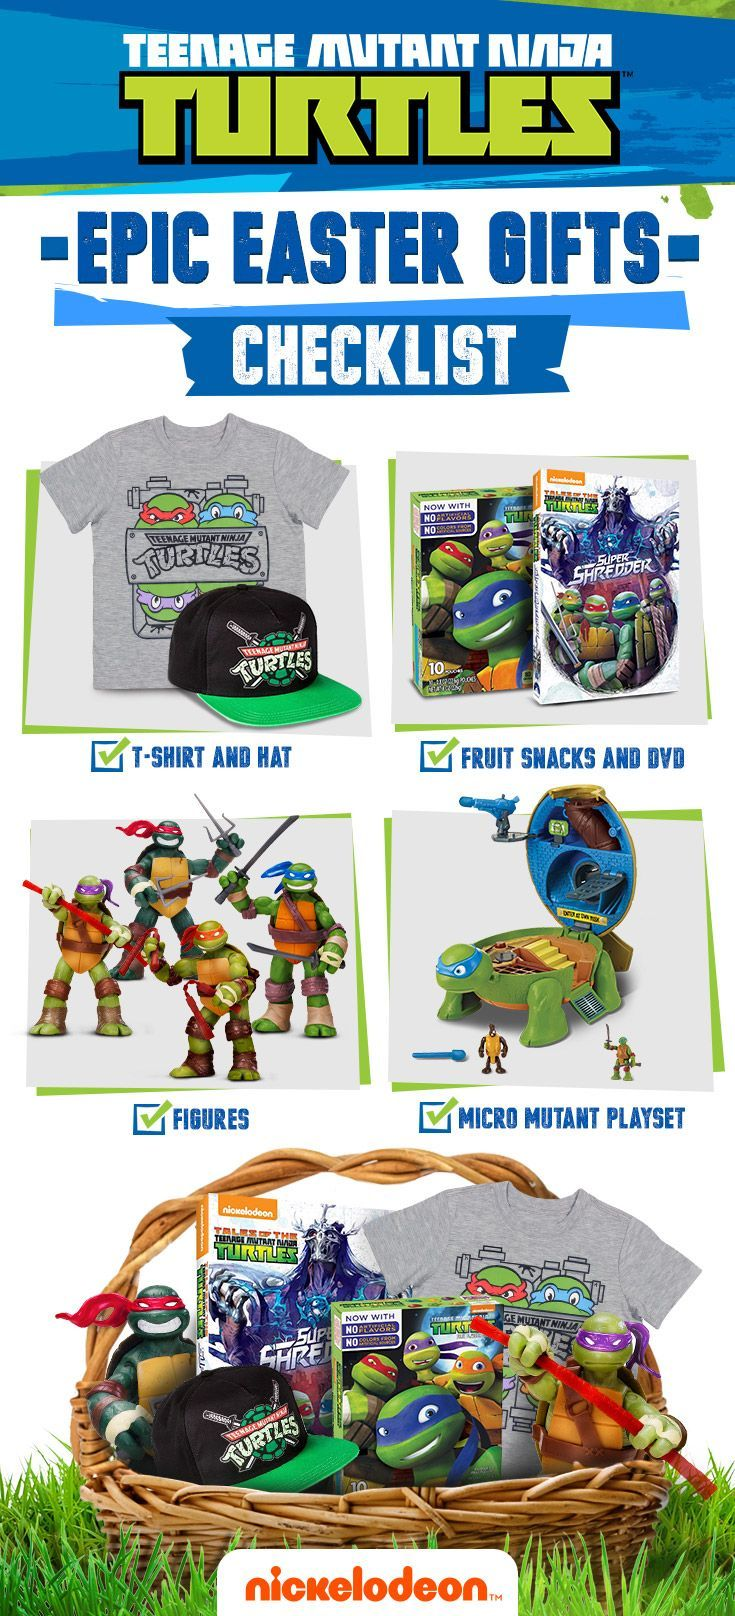 Shop and save on shelltastic Teenage Mutant Ninja Turtles gifts for your Easter Shop and save on shelltastic Teenage Mutant Ninja Turtles gifts for your Easter  Shop and...